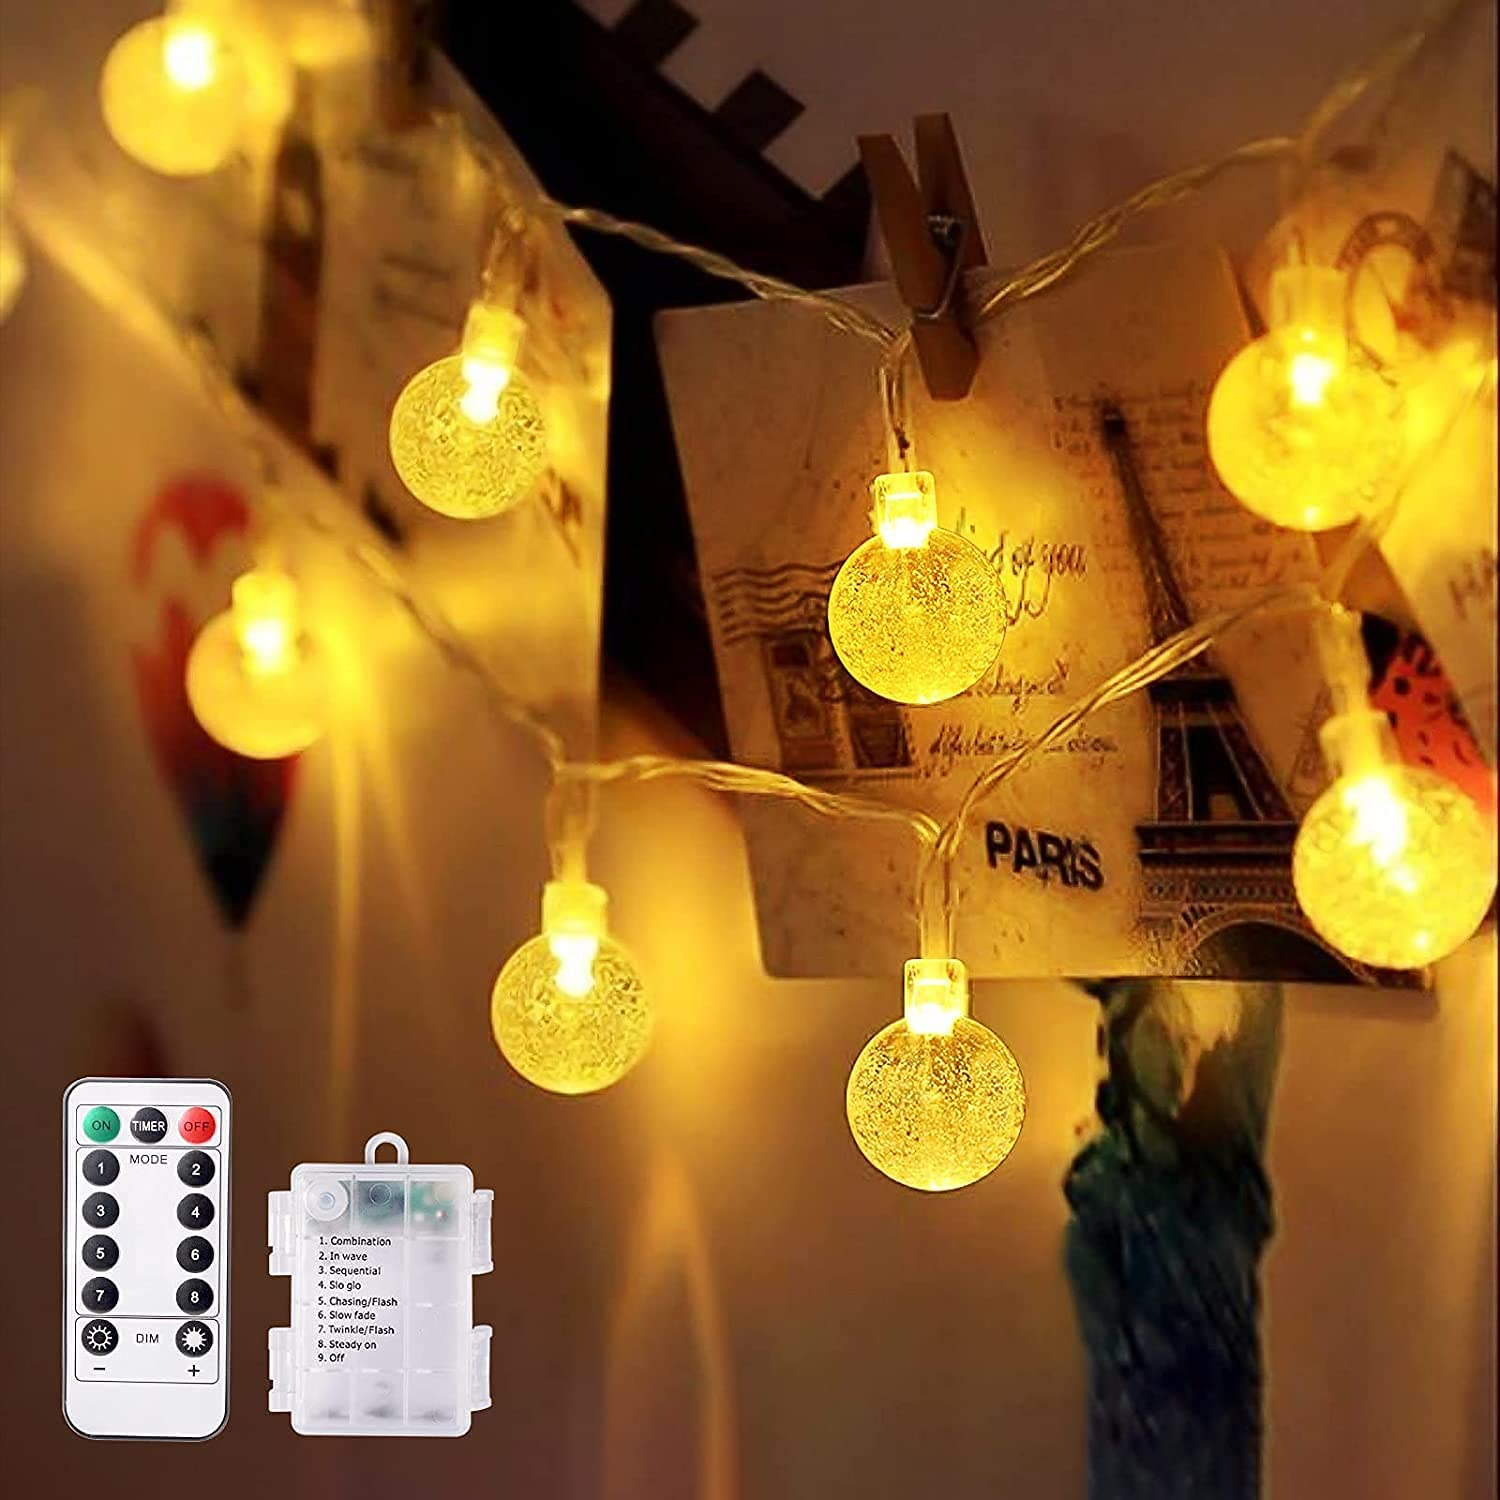 NEWYIHAN Fairy Lights Globe String Lights Battery Operated 16.4FT 50LED with Remote 8 Modes Waterproof Indoor Outdoor Decorative Lights for Christmas Party Birthday Patio Garden Wedding (Warm White)